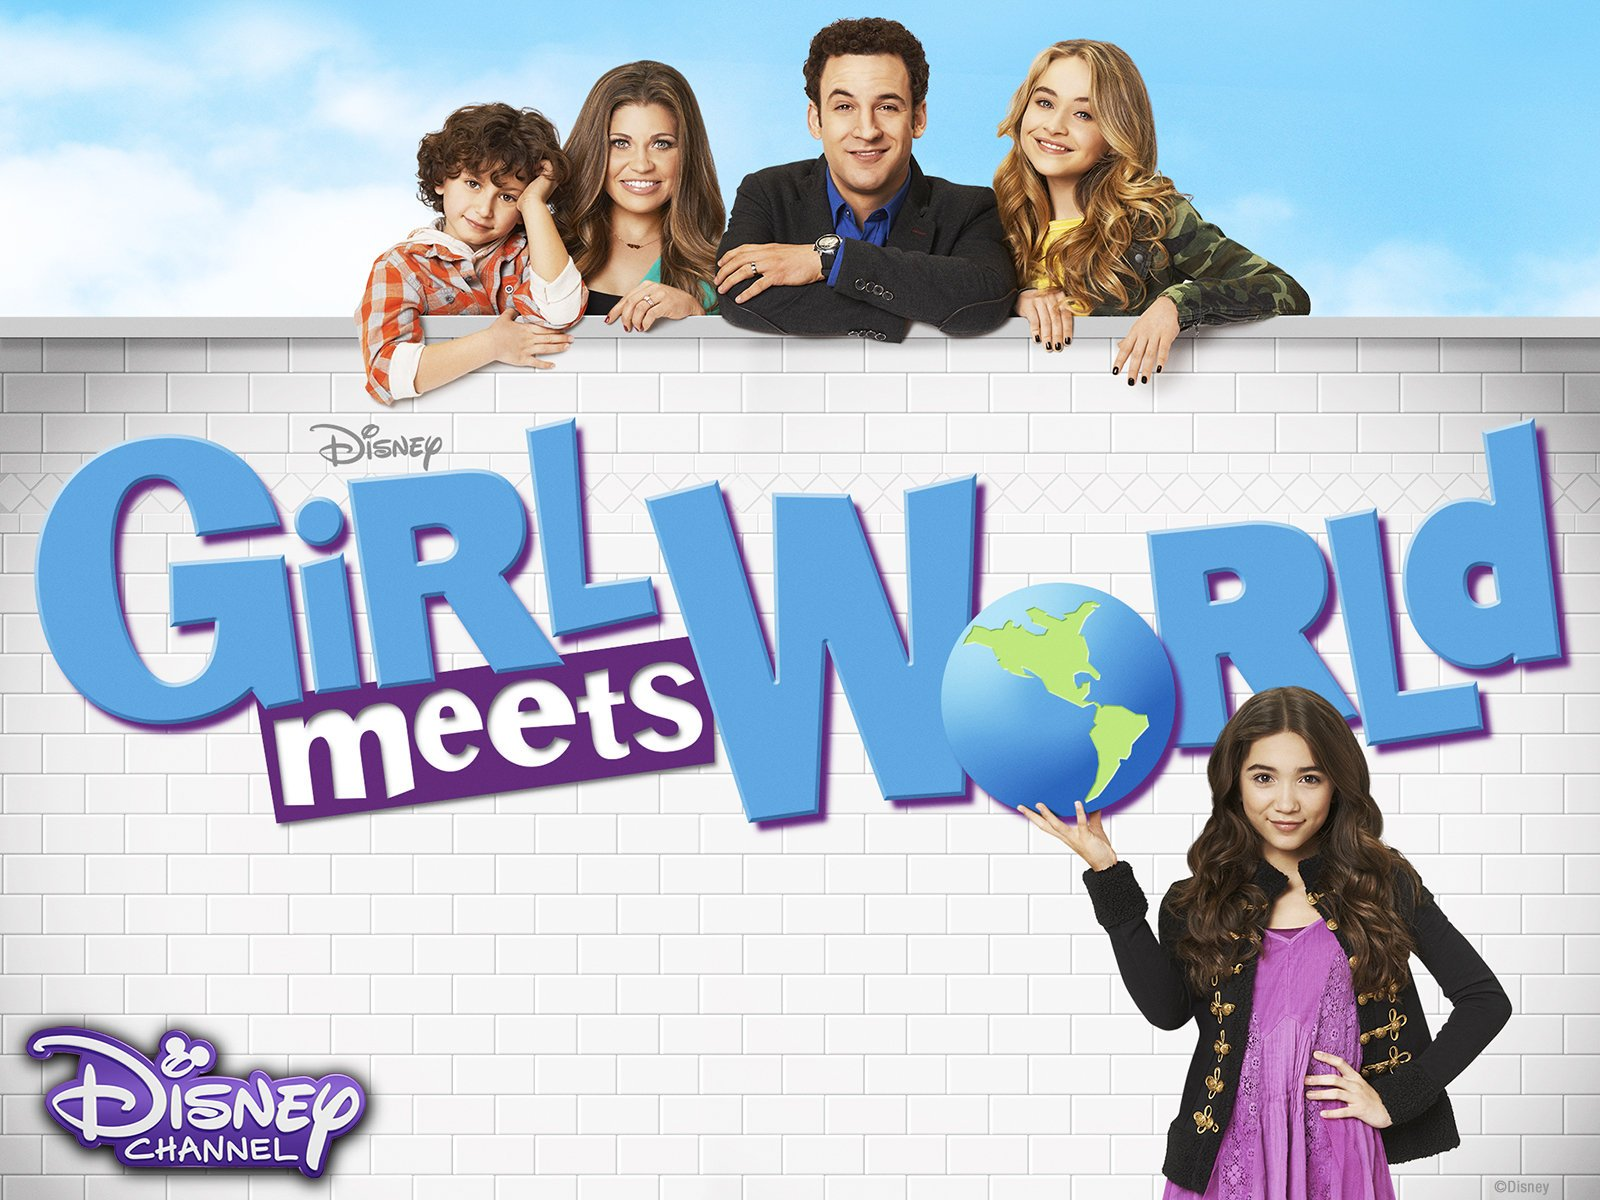 Why did they cancel girl meets world